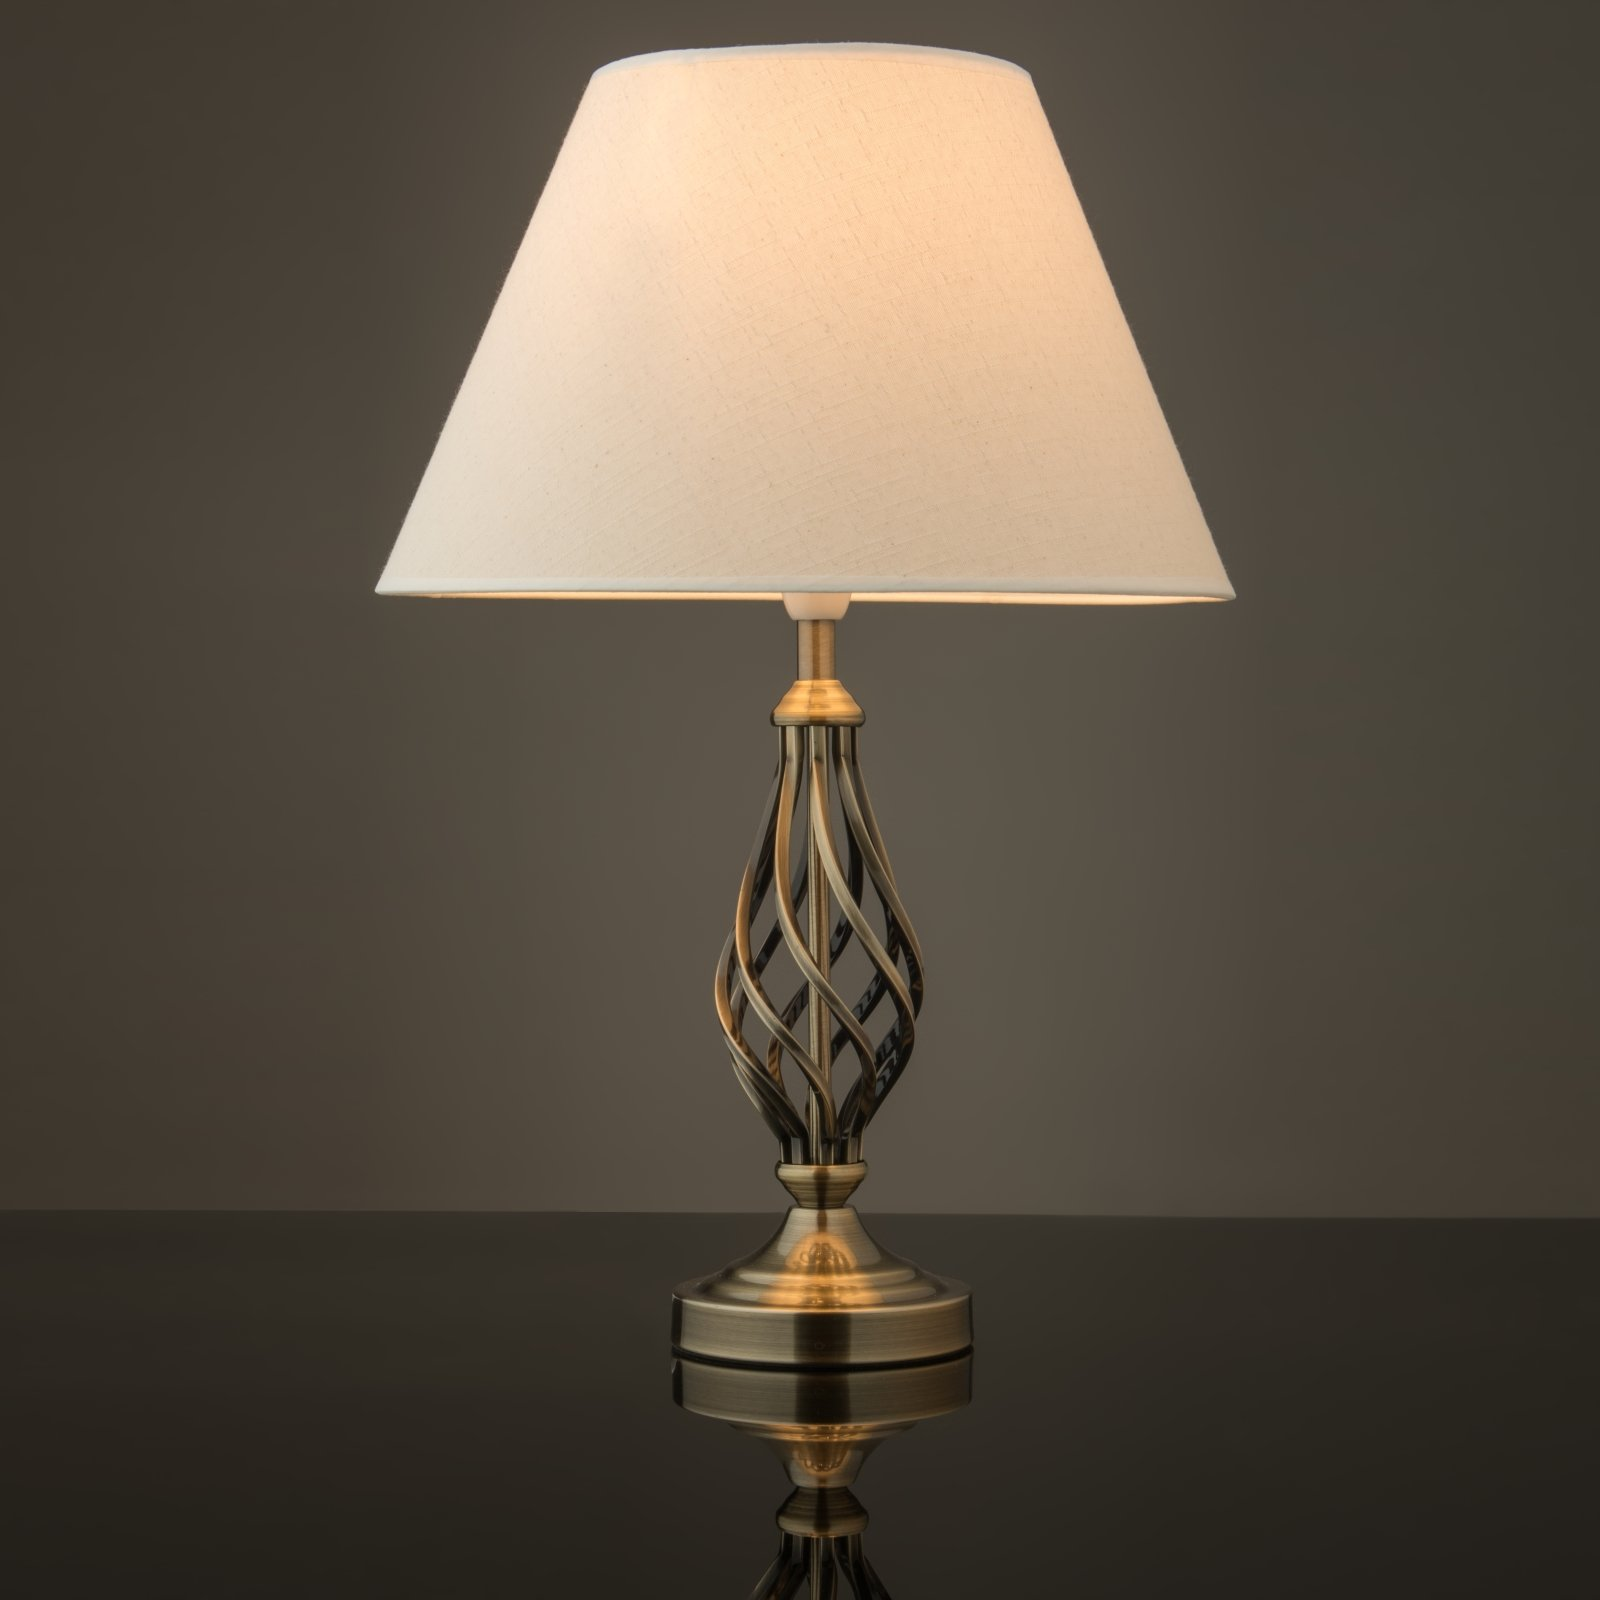 Decorative table lamp amazon kingswood barley twist traditional table lamp antique brass aloadofball Image collections